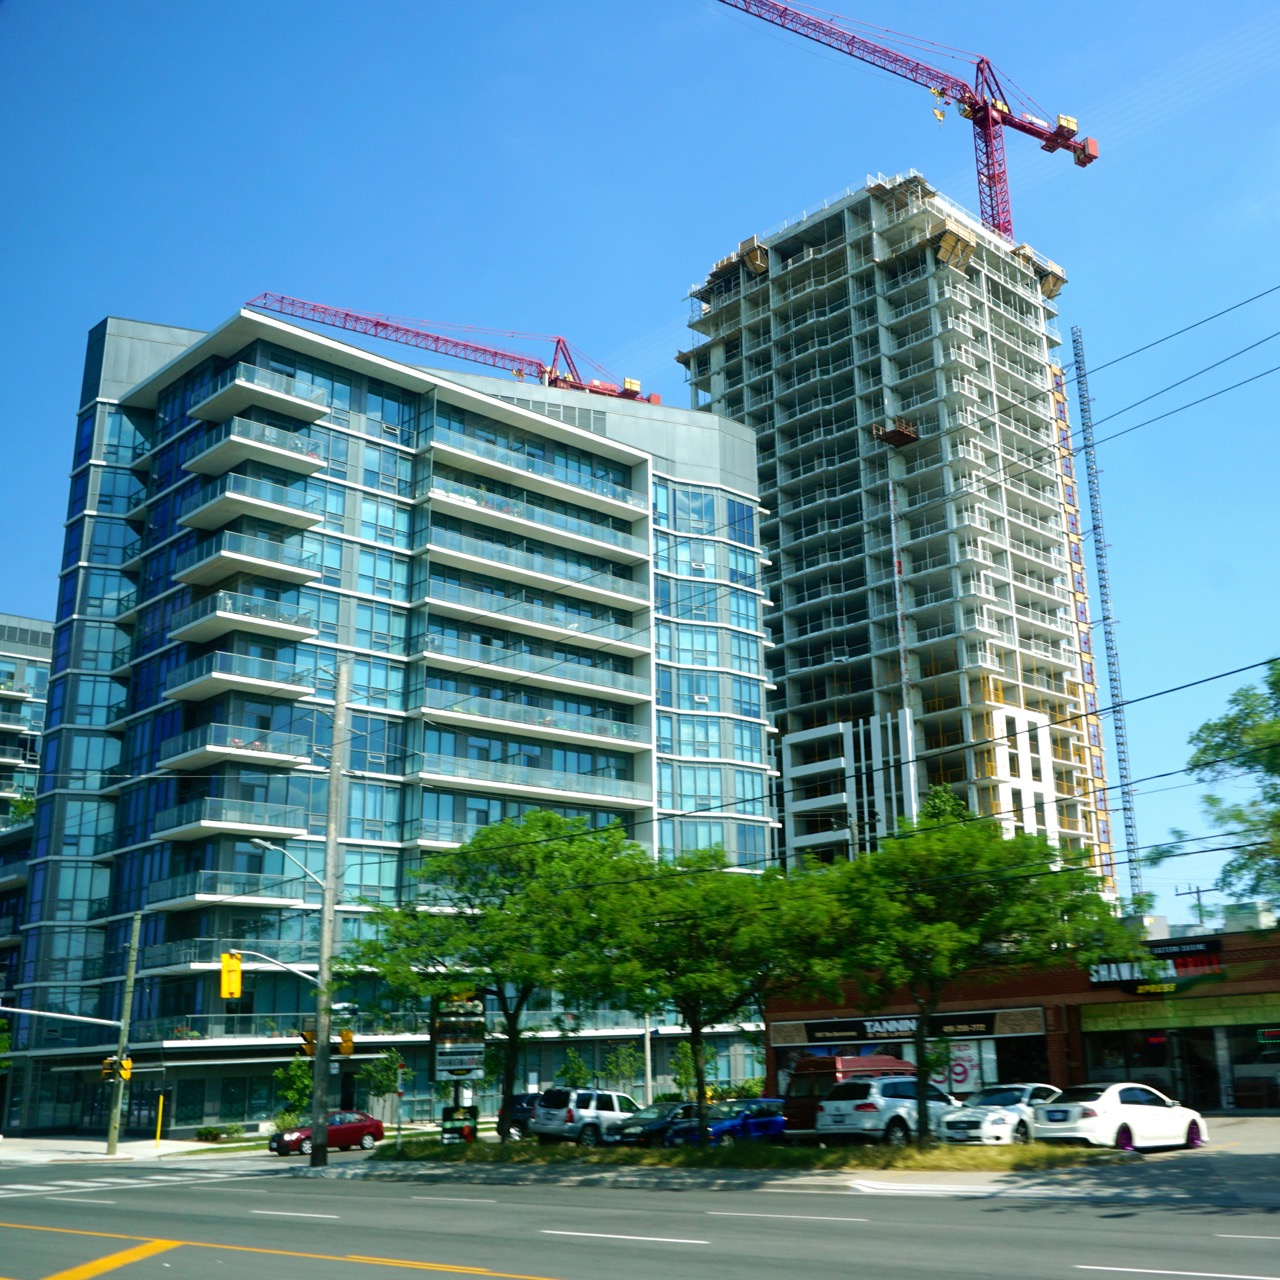 Richmond Architects: IQ Condos Phase 1 & Park Towers Phase 2